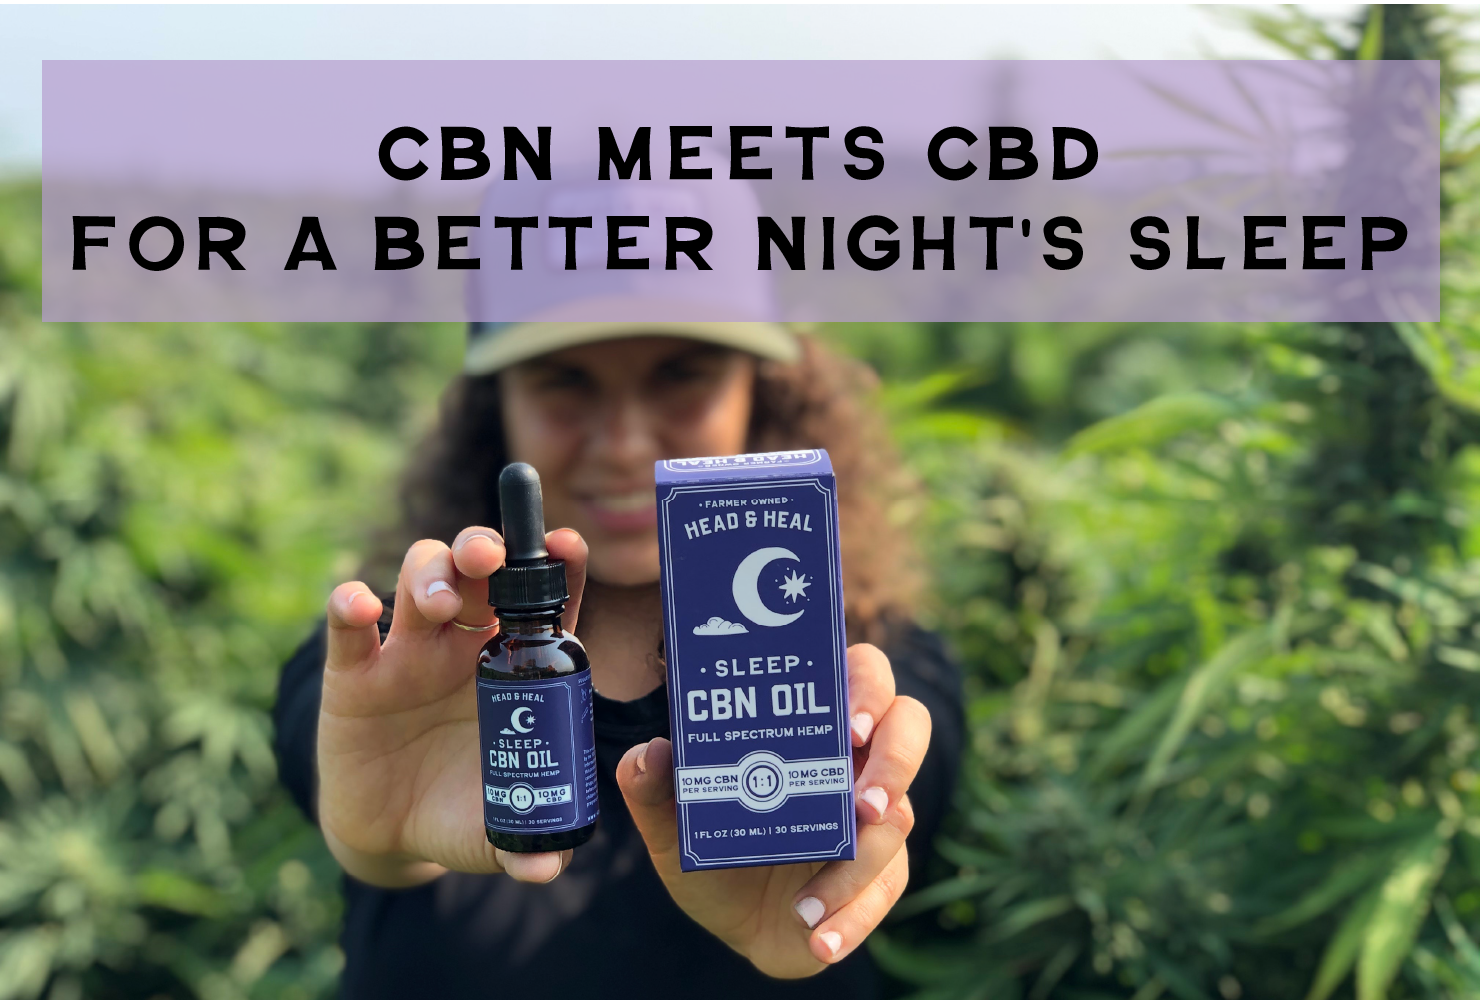 CBN meets CBD for a Better Night's Sleep